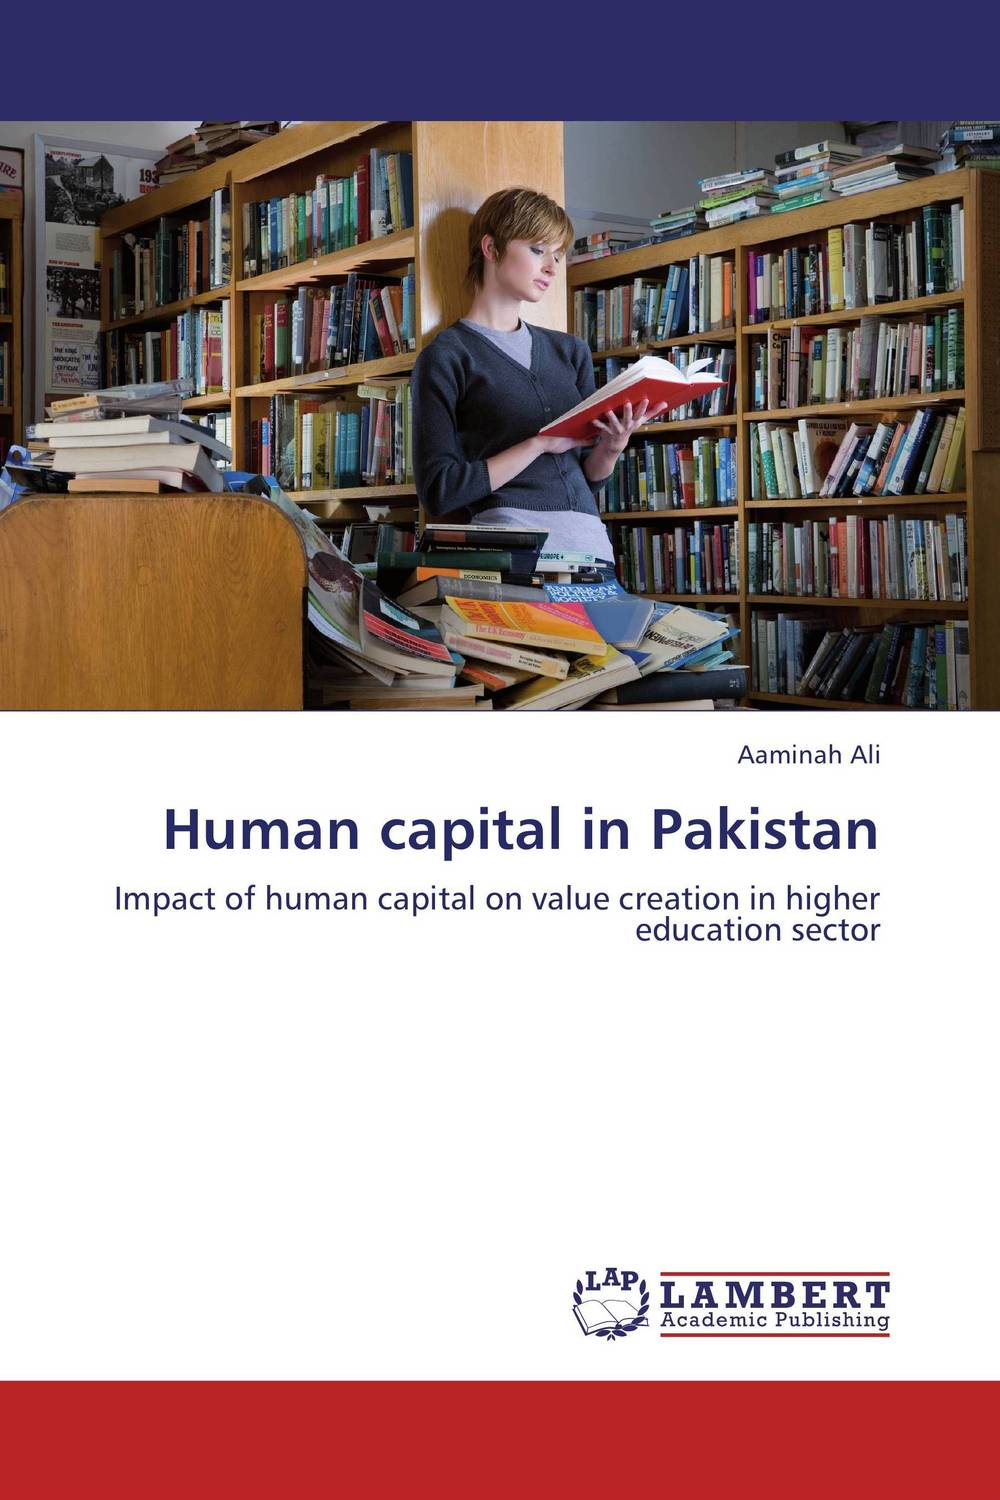 Human capital in Pakistan building value through human resources